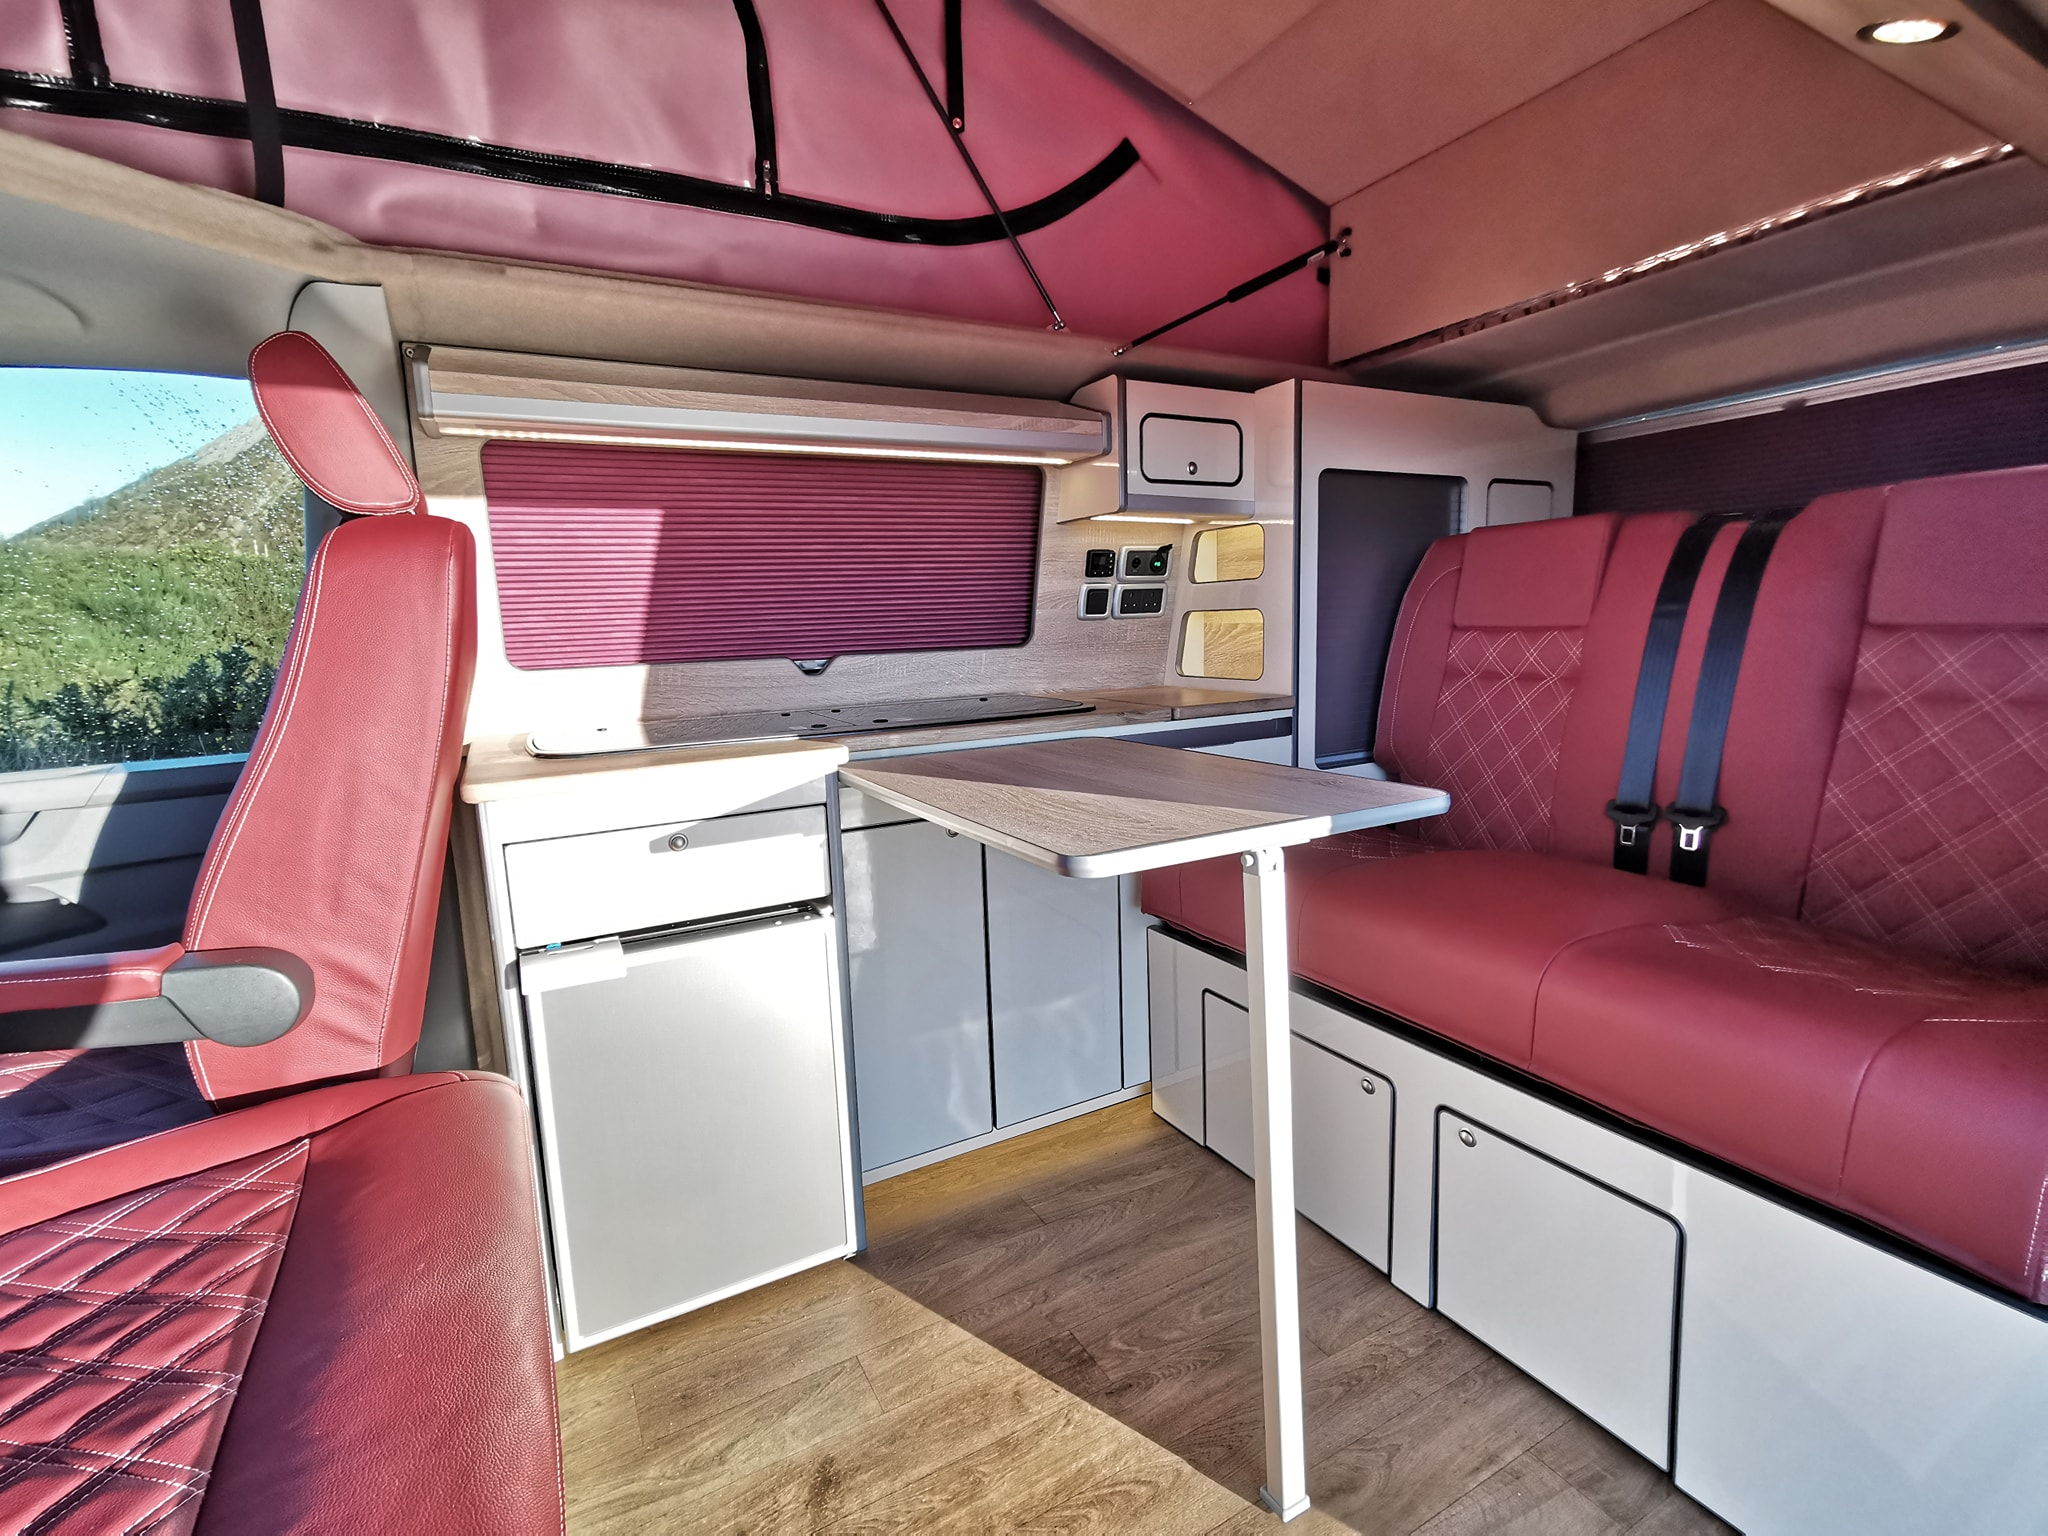 Check out our guide to campervan insurance so you know what to look for when your conversion is complete.